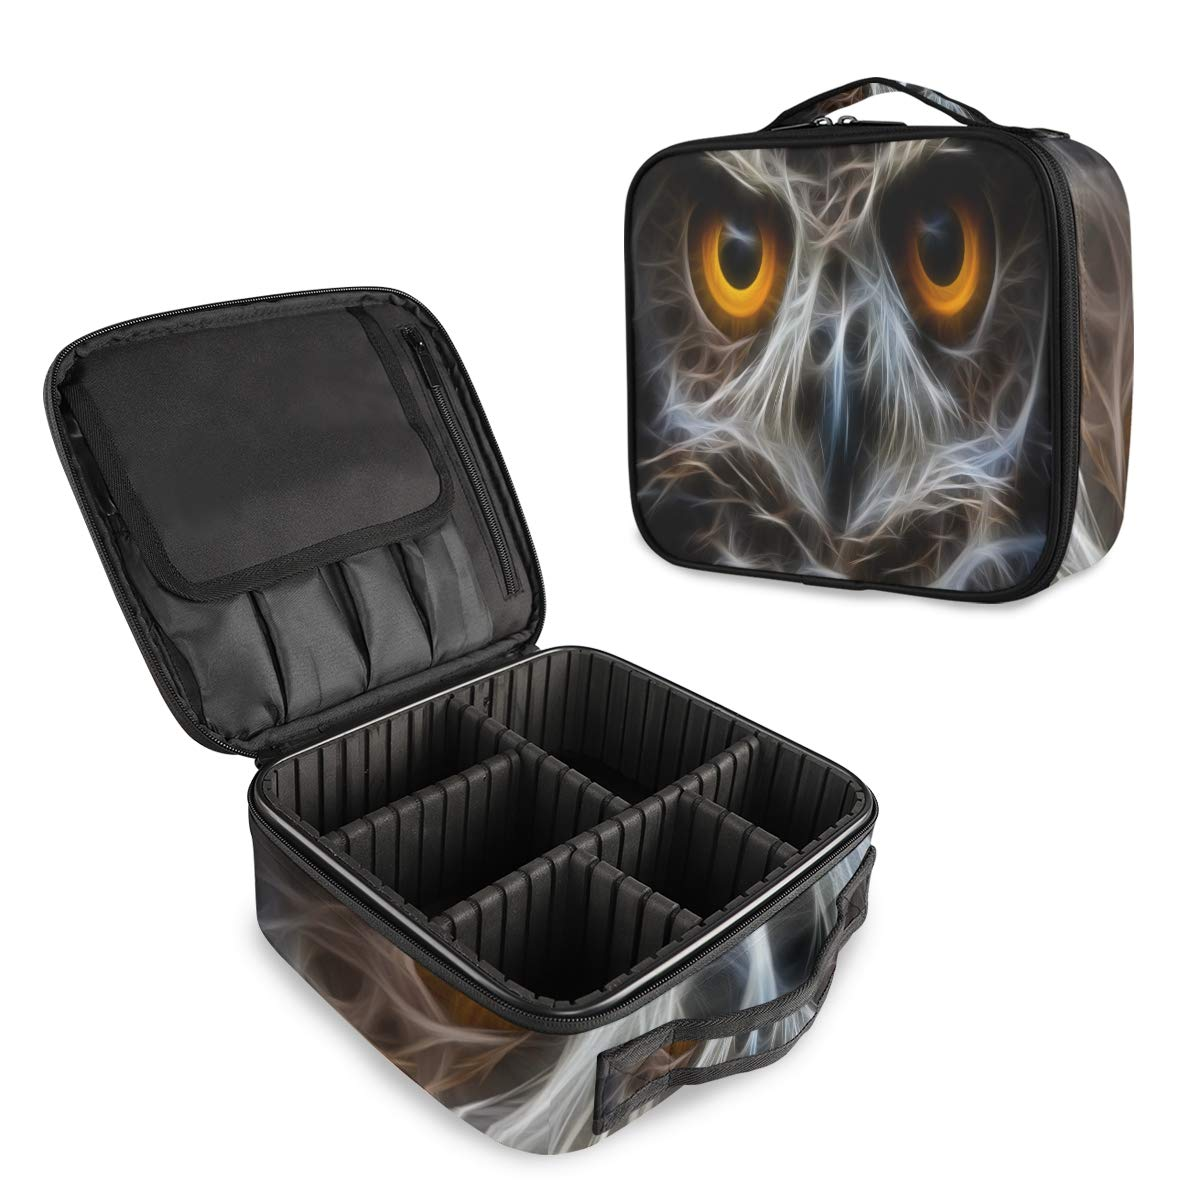 ALAZA Owl Owlet Eye Makeup Cosmetic Case Organizer Portable Storage Bag Travel Makeup Train Case with Adjustable Dividers